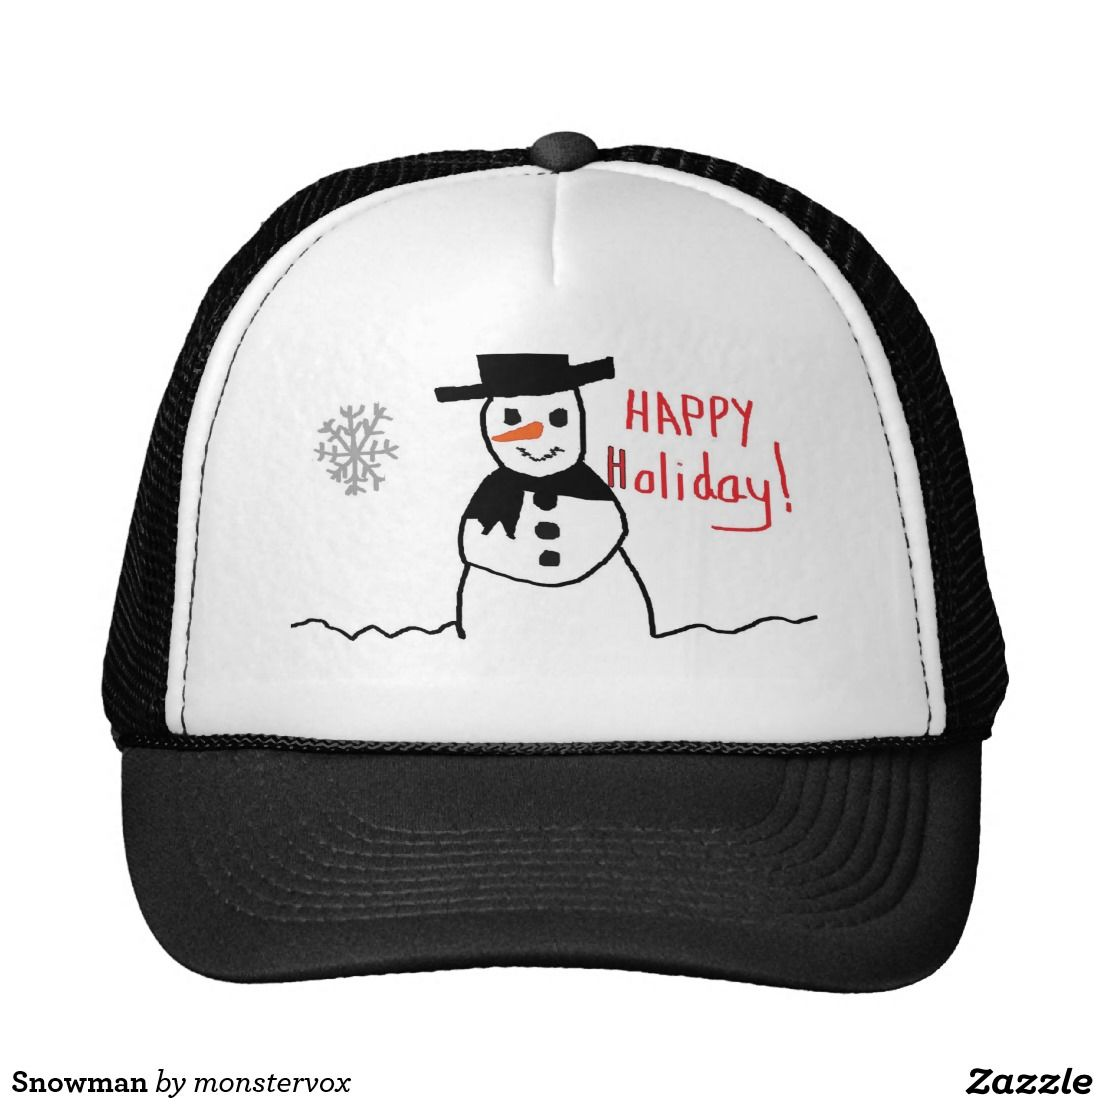 Snowman Trucker Hat  Snowman  Snow  Snowflake  Winter  Holiday  Christmas   49bfef246d7